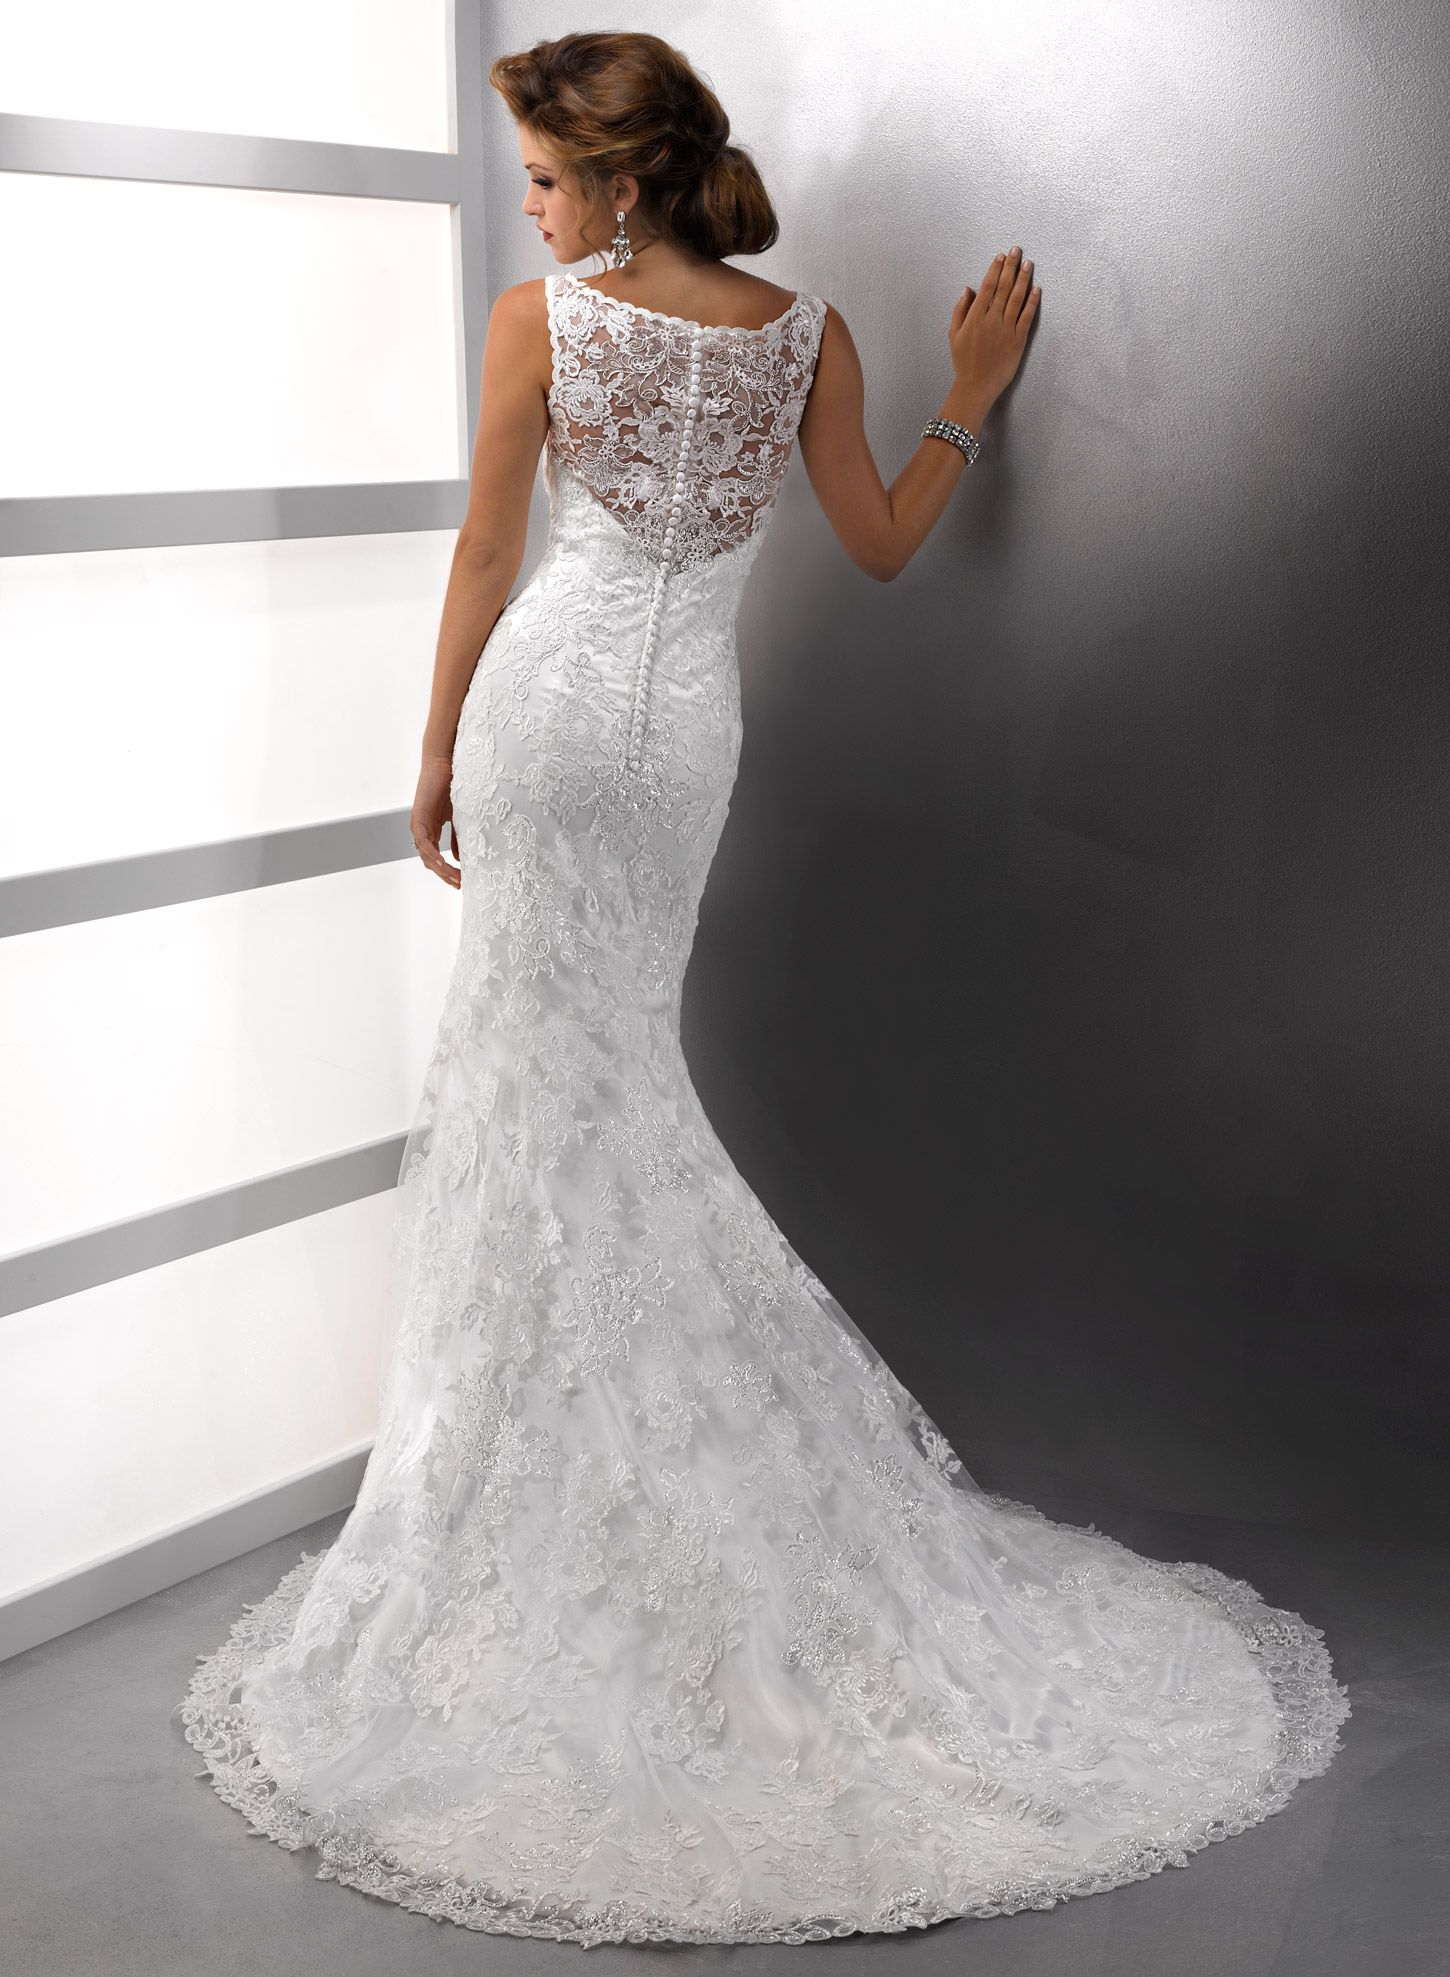 Discover The Sottero And Midgley Justina Bridal Gown Find Exceptional Gowns At Wedding Shoppe